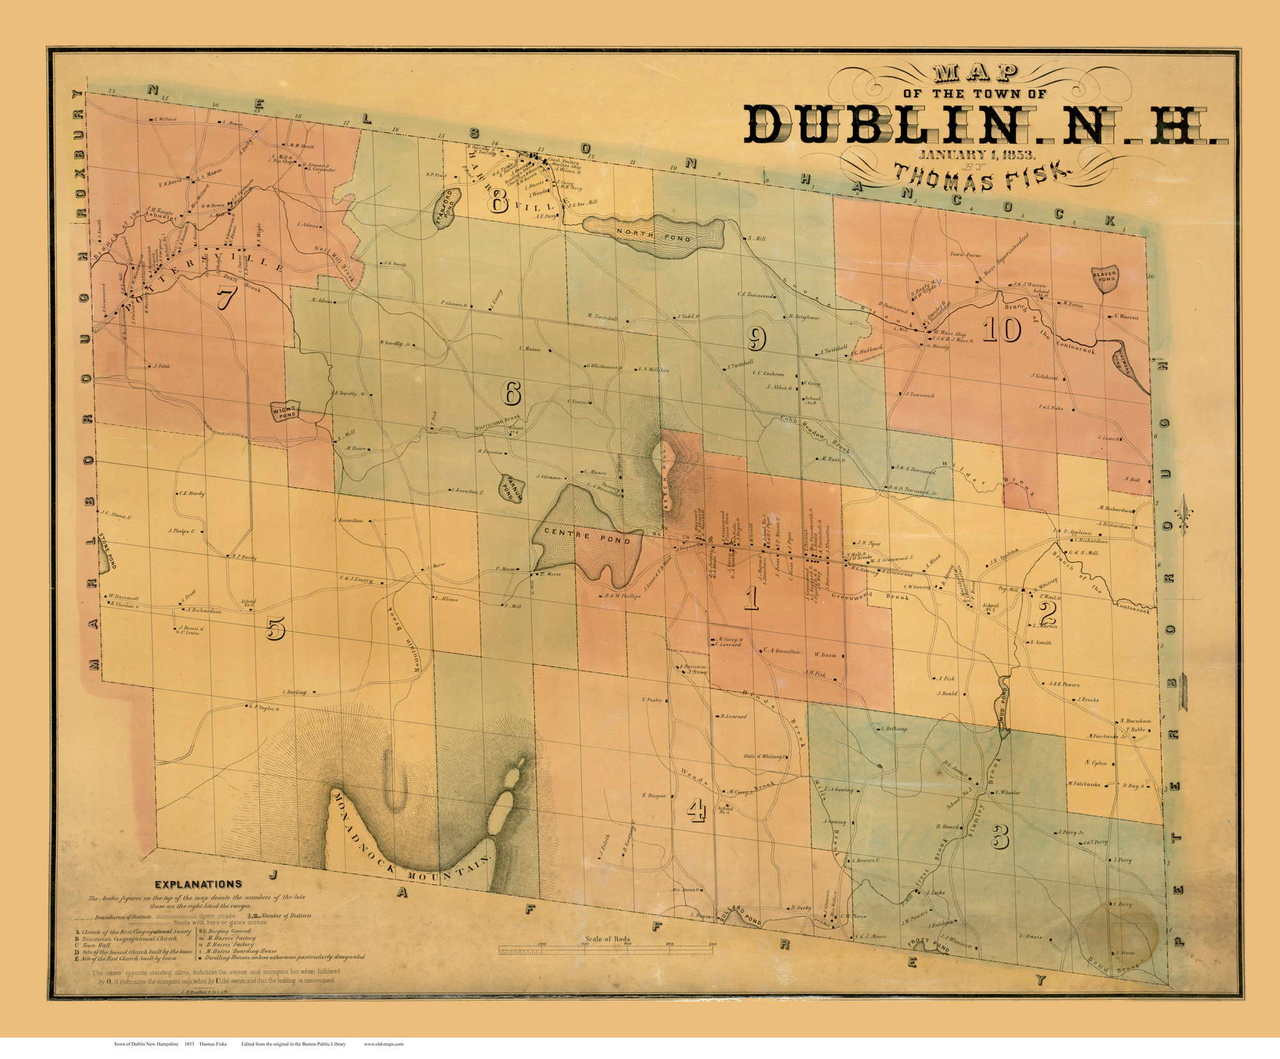 Maps Dublin.Dublin 1853 Fisk Old Map Reprint New Hampshire Towns Other